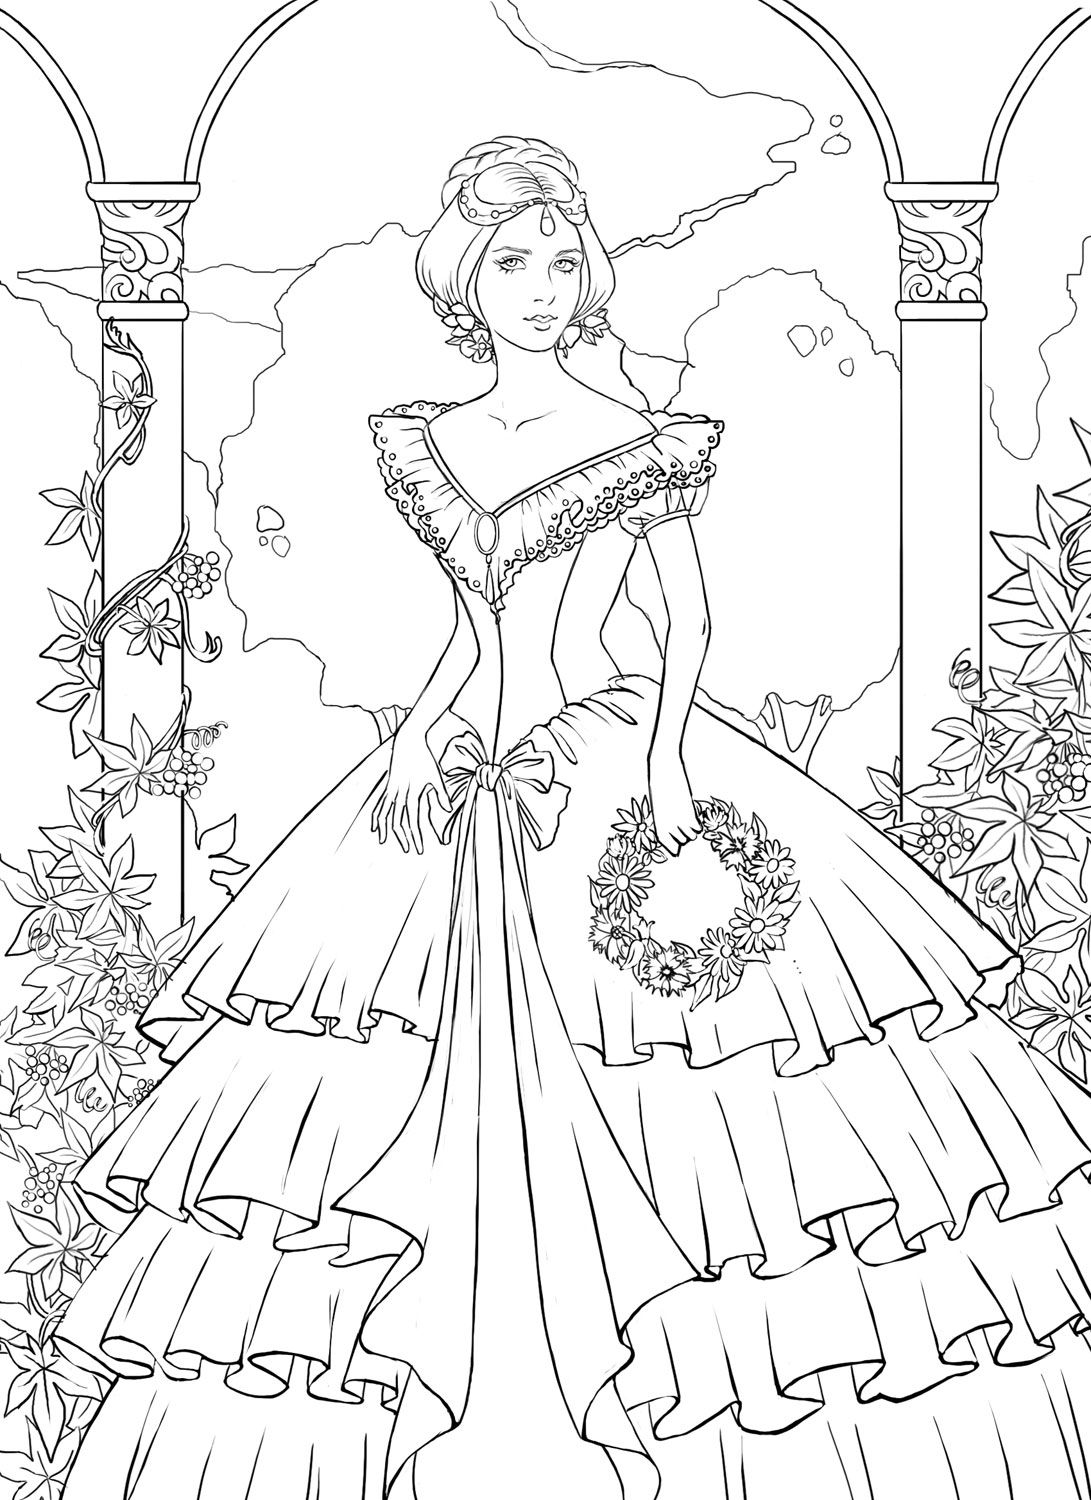 Coloring Page Landscape - Detailed landscape coloring pages for adults coloring online